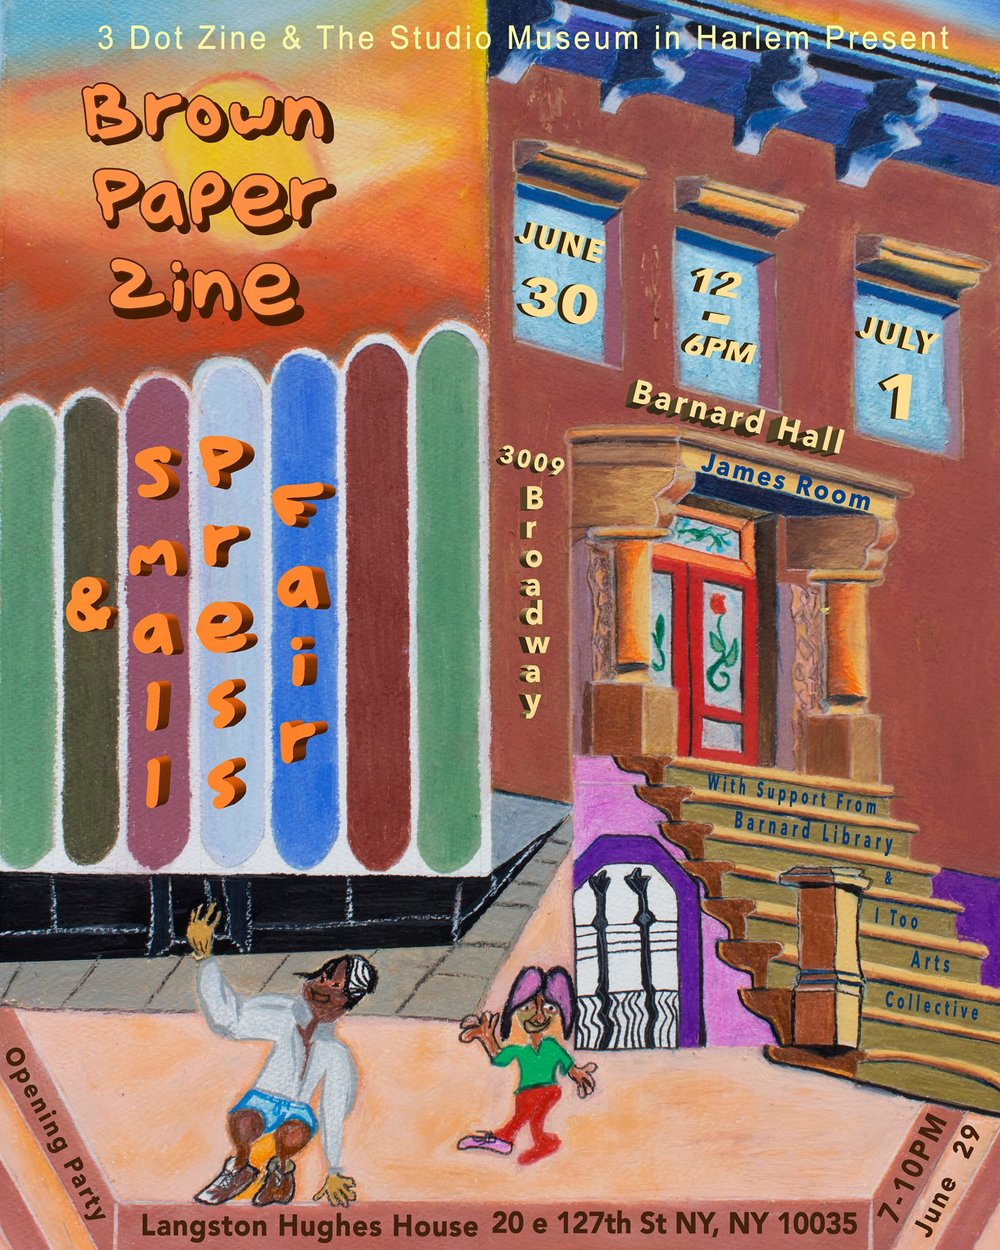 Brown Paper Zine & Small Press Fair - 2018